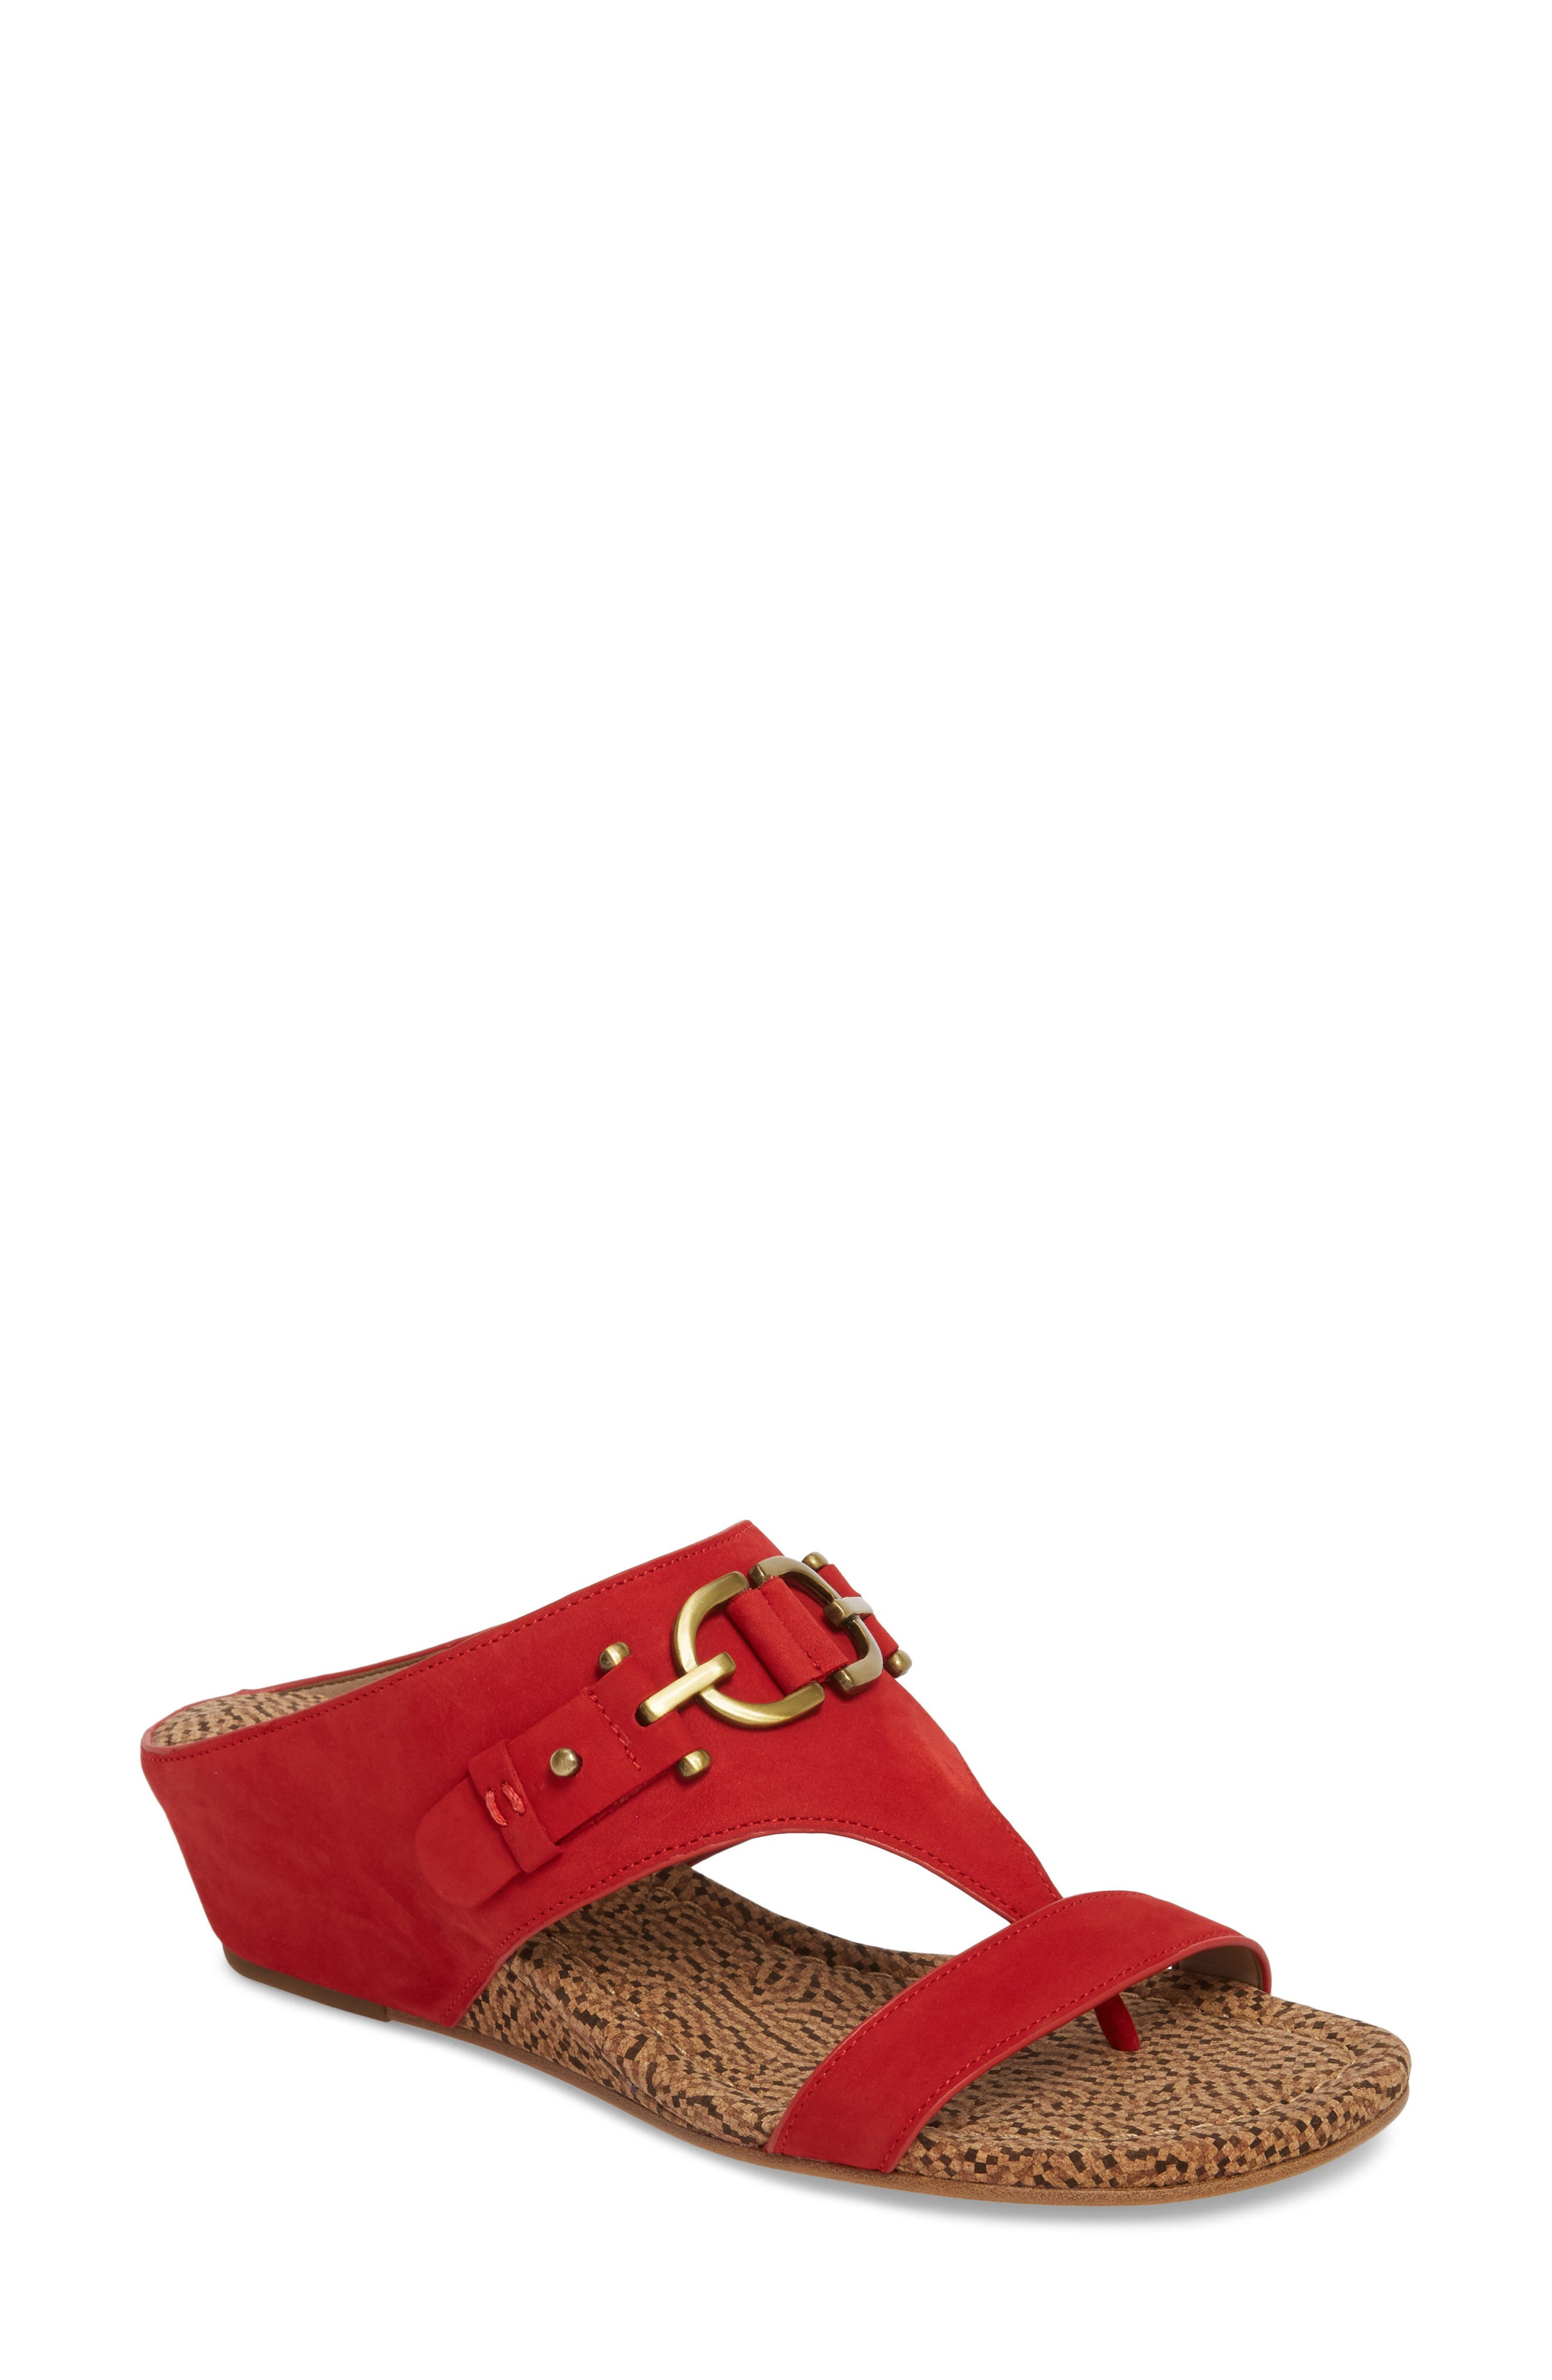 Dayna Wedge Sandal,                             Main thumbnail 1, color,                             Poppy Leather